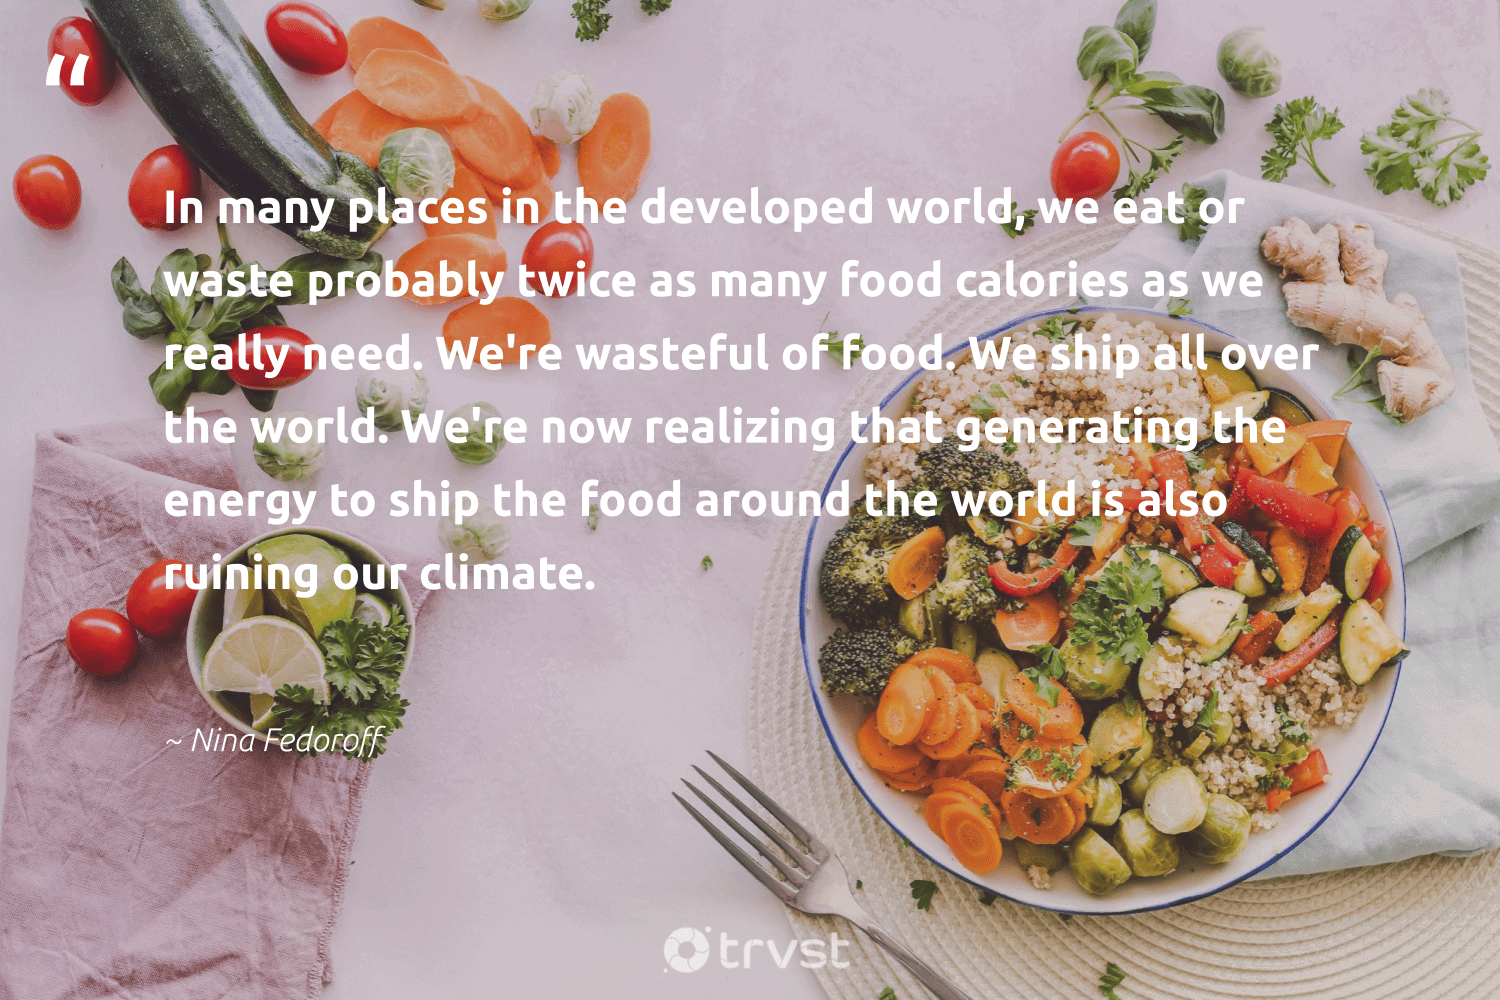 """""""In many places in the developed world, we eat or waste probably twice as many food calories as we really need. We're wasteful of food. We ship all over the world. We're now realizing that generating the energy to ship the food around the world is also ruining our climate.""""  - Nina Fedoroff #trvst #quotes #waste #energy #climate #food #co2 #trash #sustainablefutures #gogreen #climateaction #sustainability"""